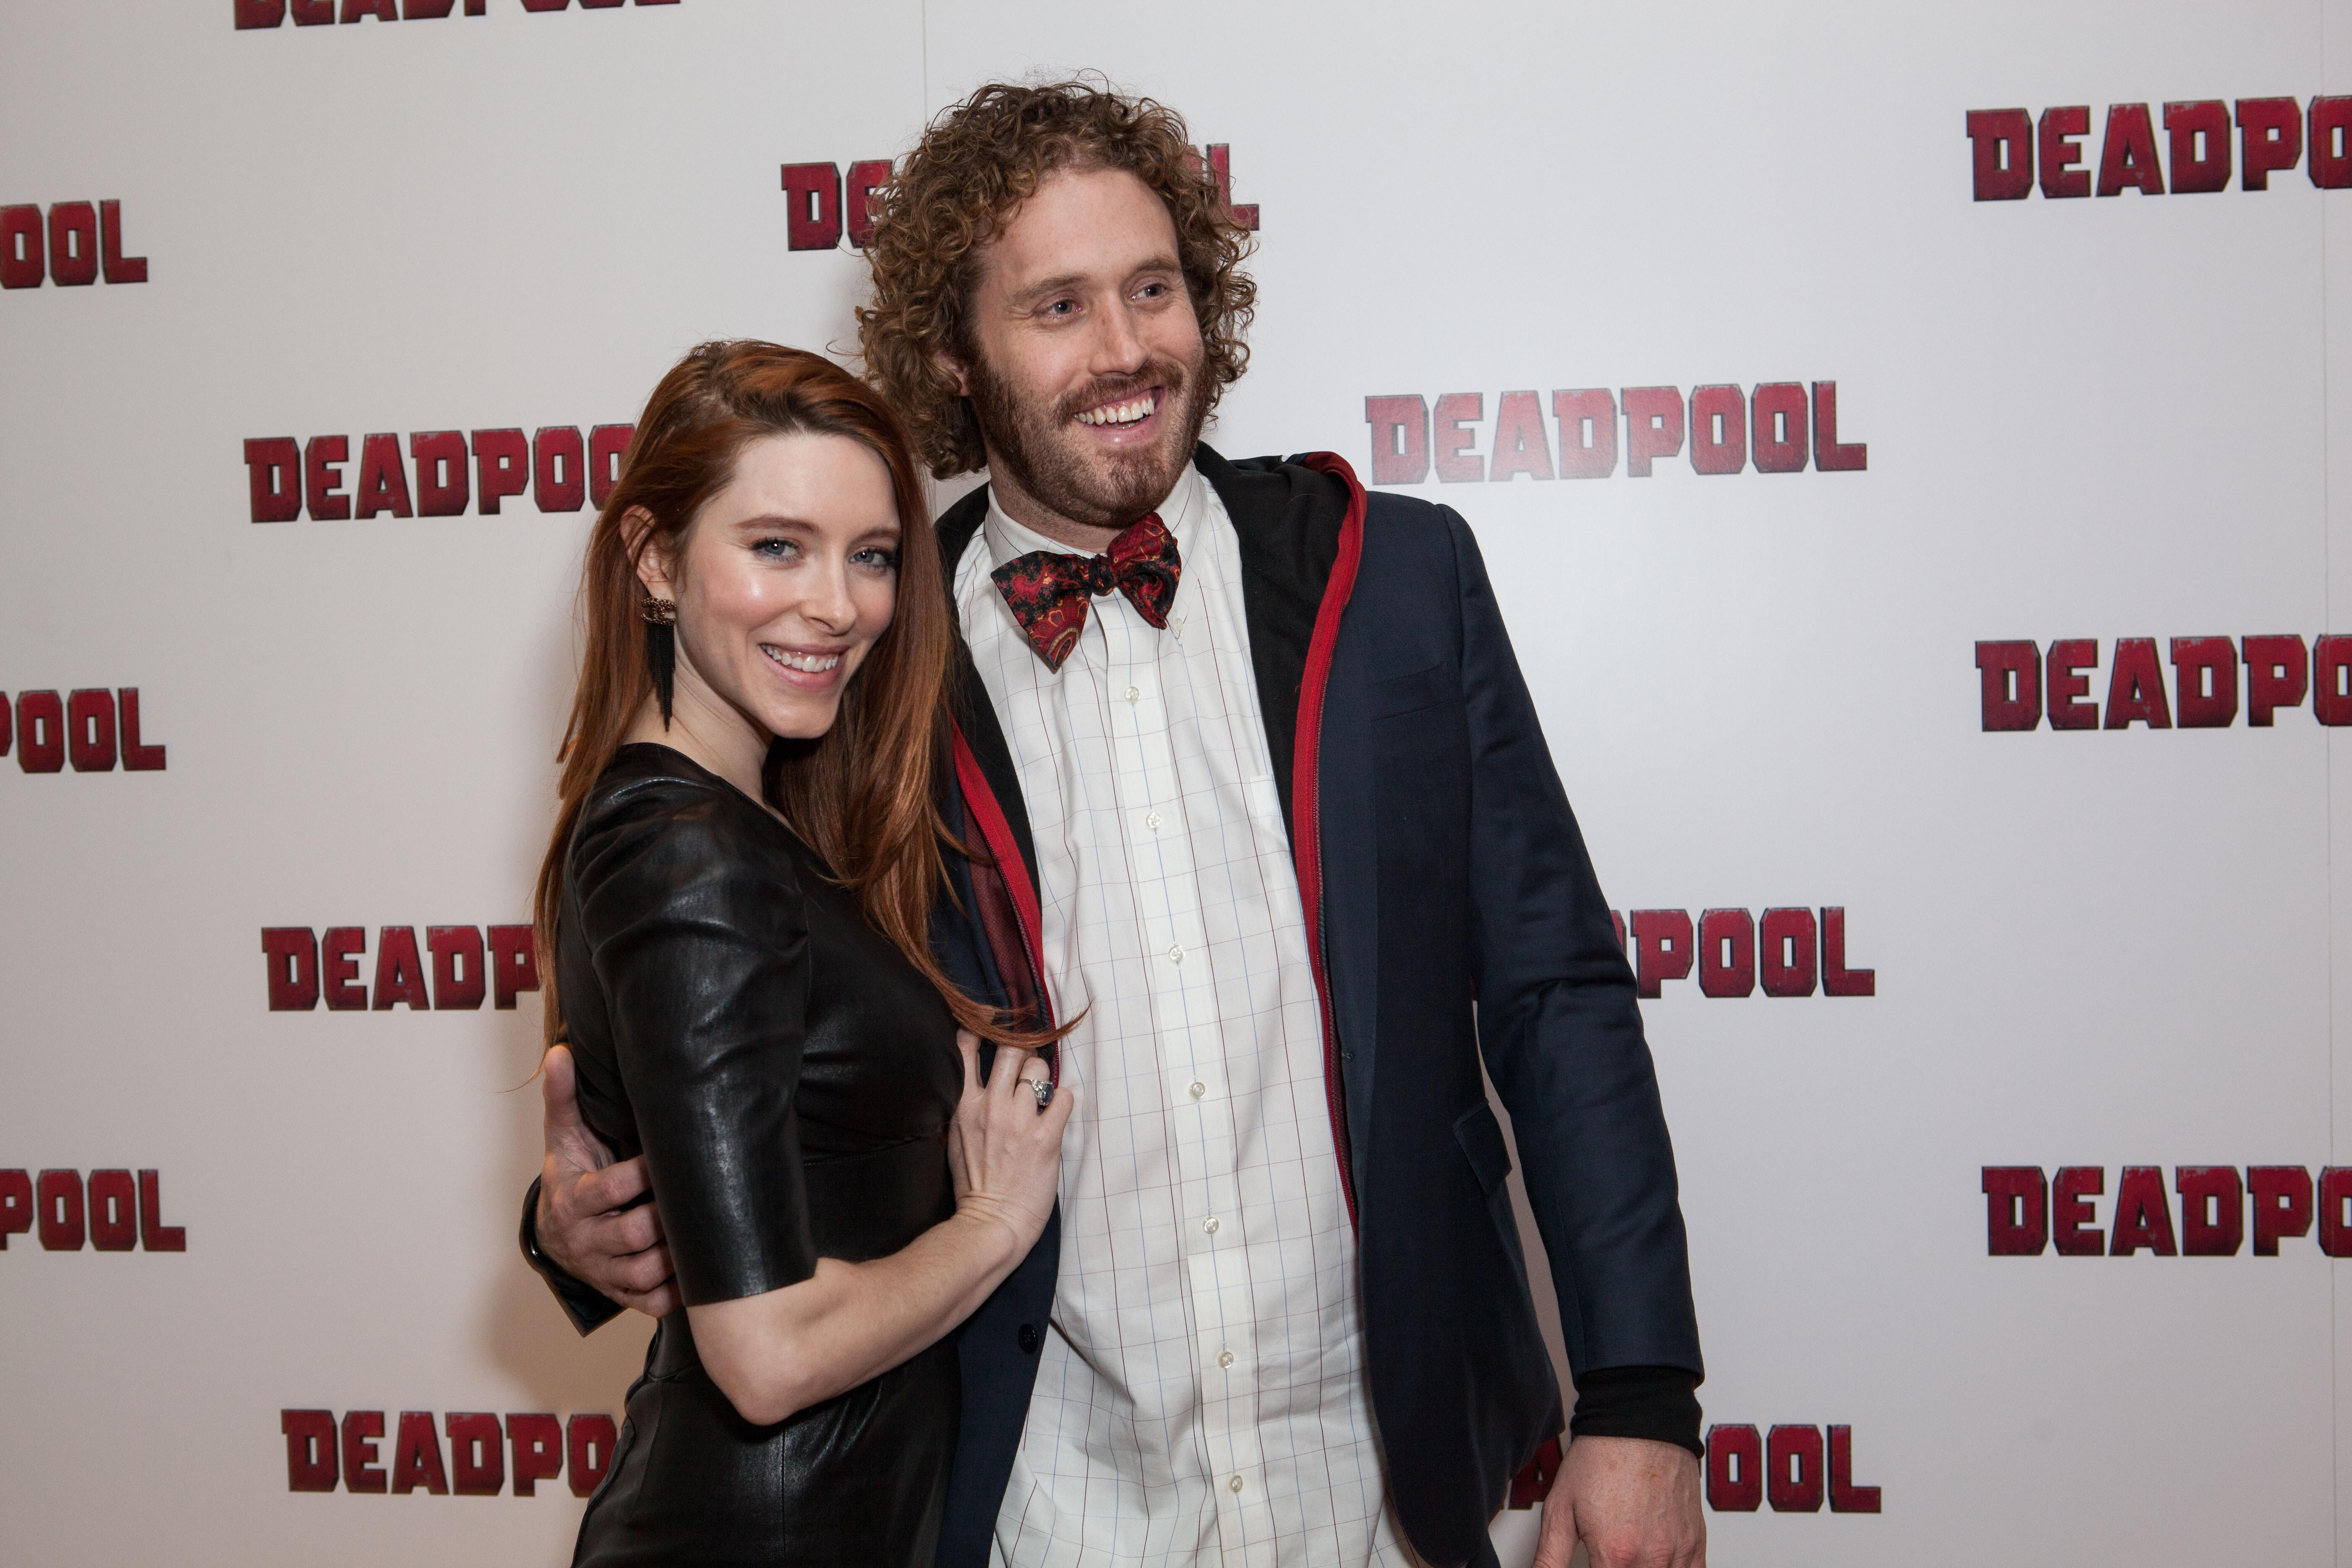 Controversial comedian T.J. Miller brings his act to the ...